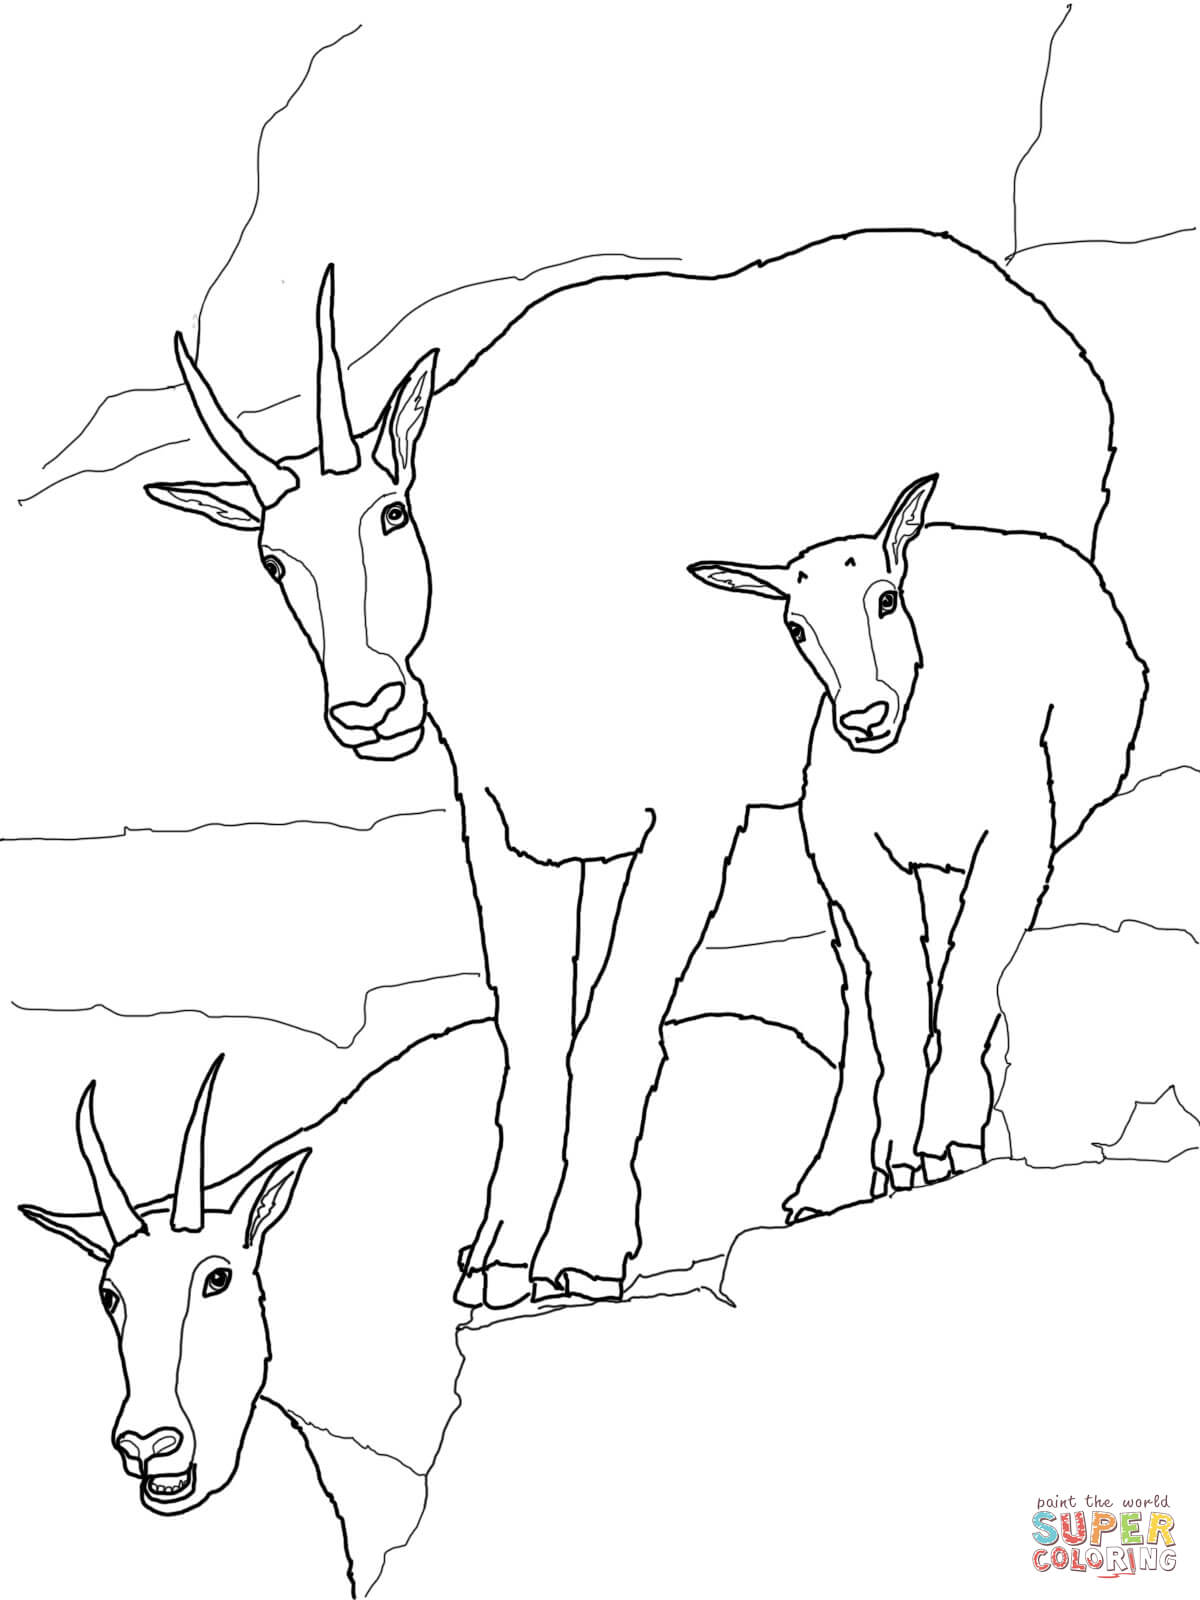 goat-coloring-page-0025-q1